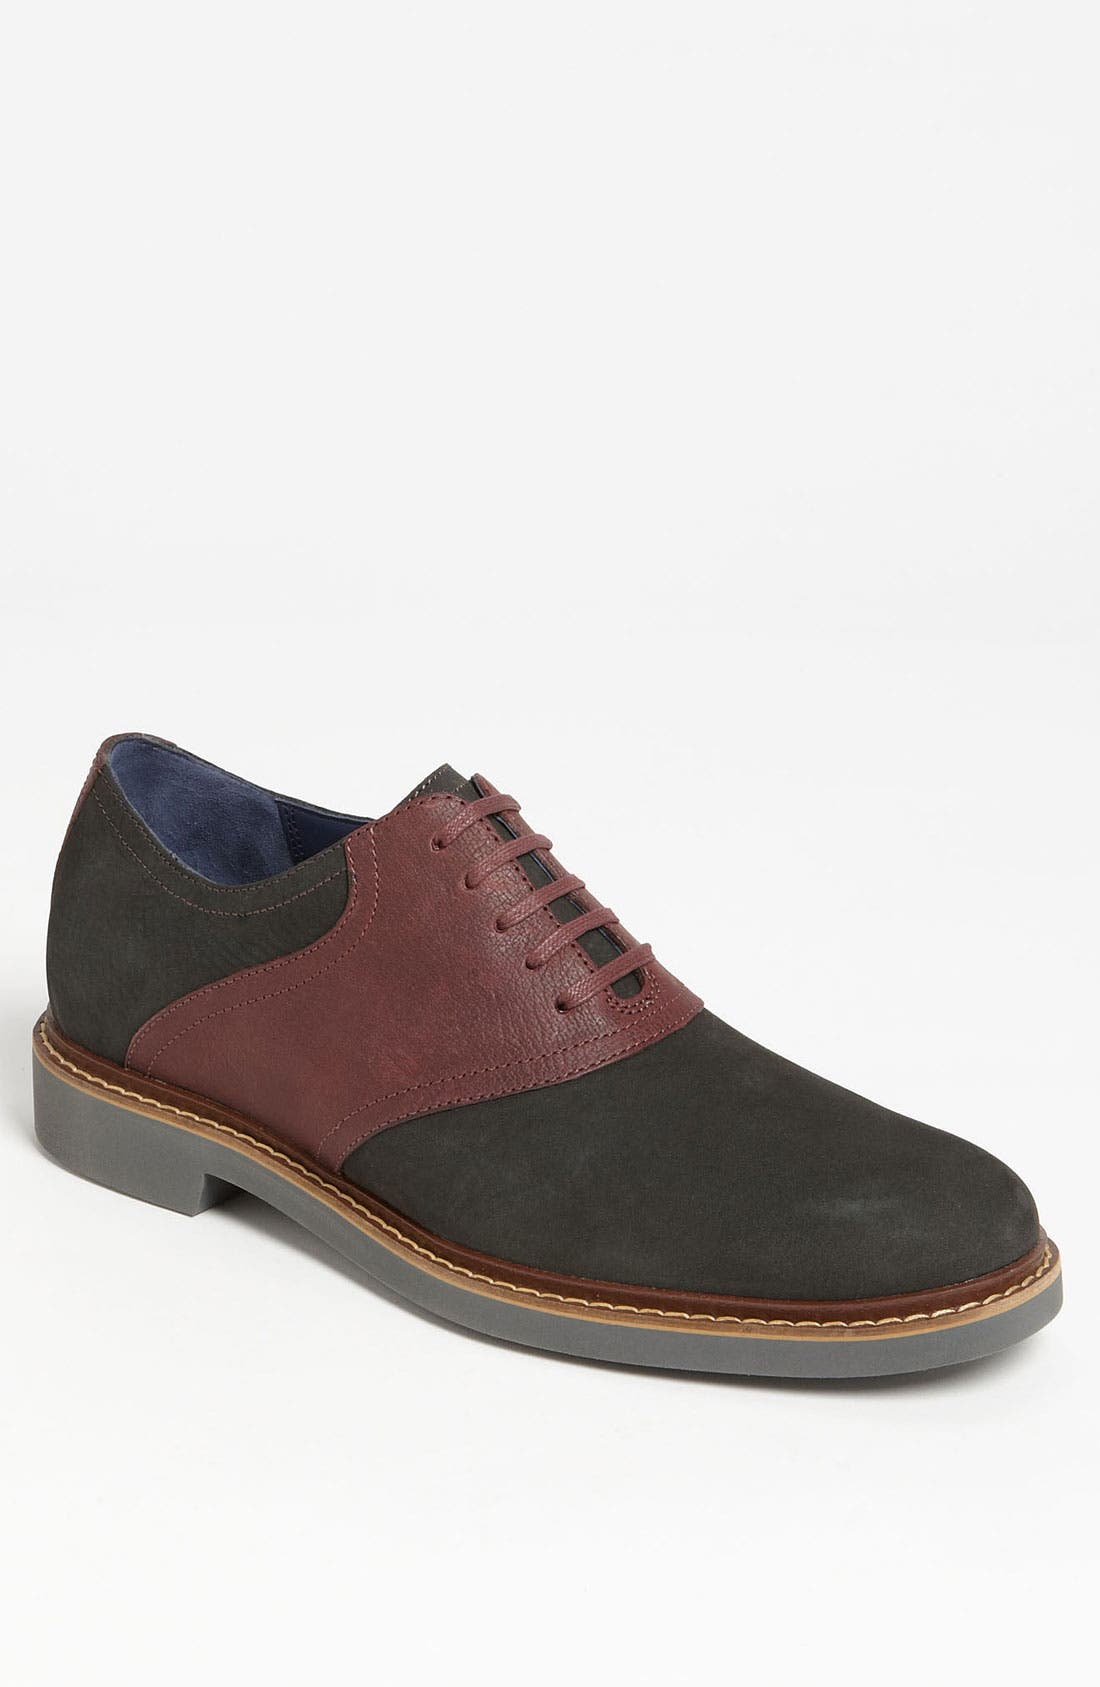 Main Image - Cole Haan 'Air Harrison' Saddle Shoe